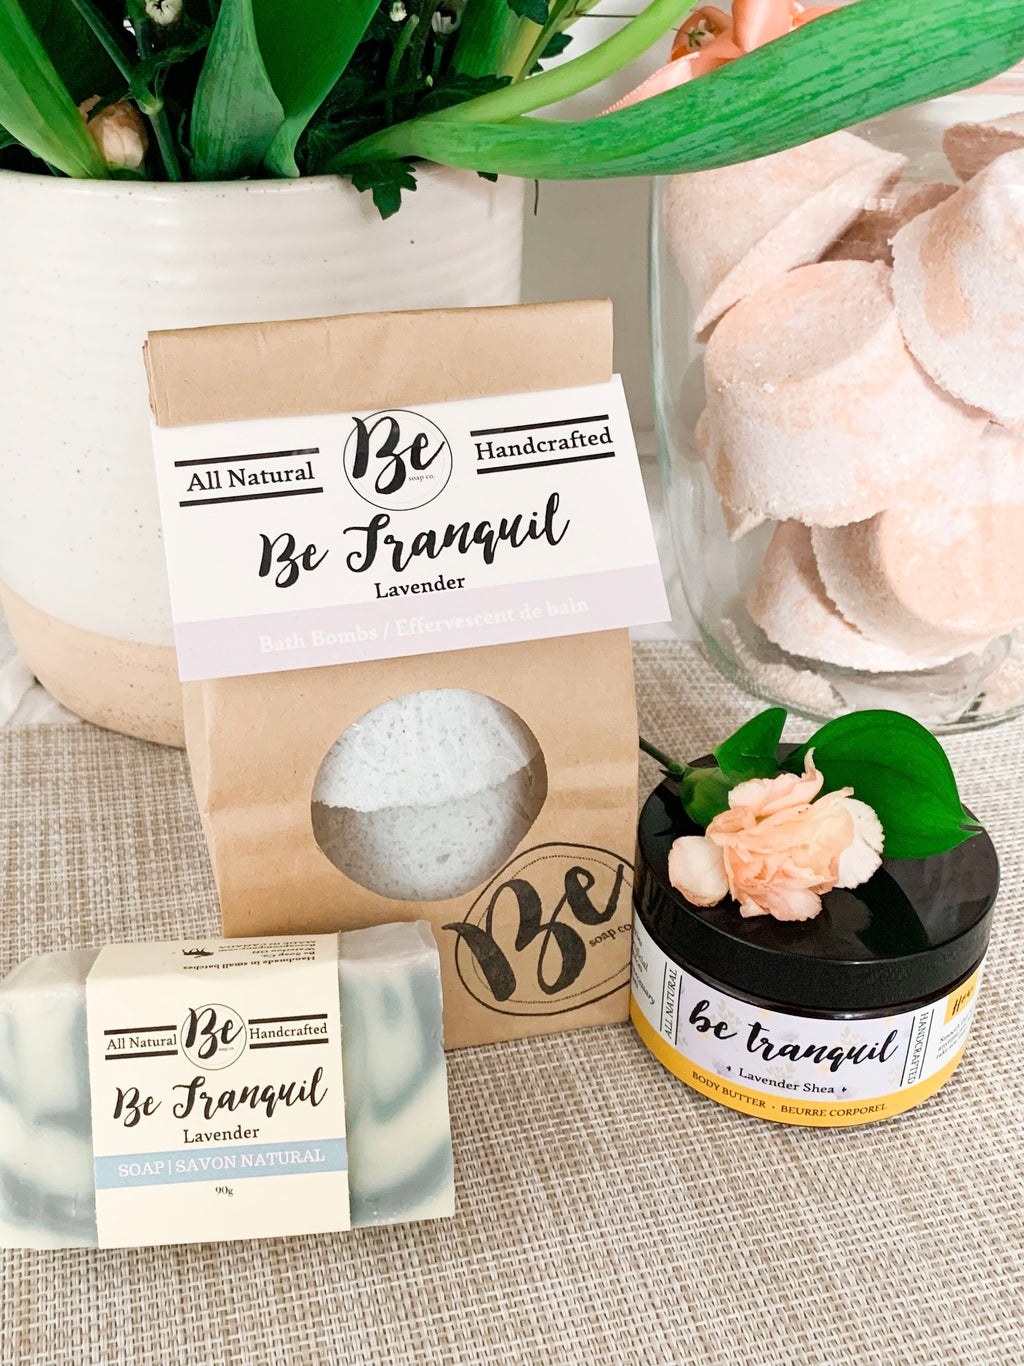 Be Tranquil Lavender Gift Set